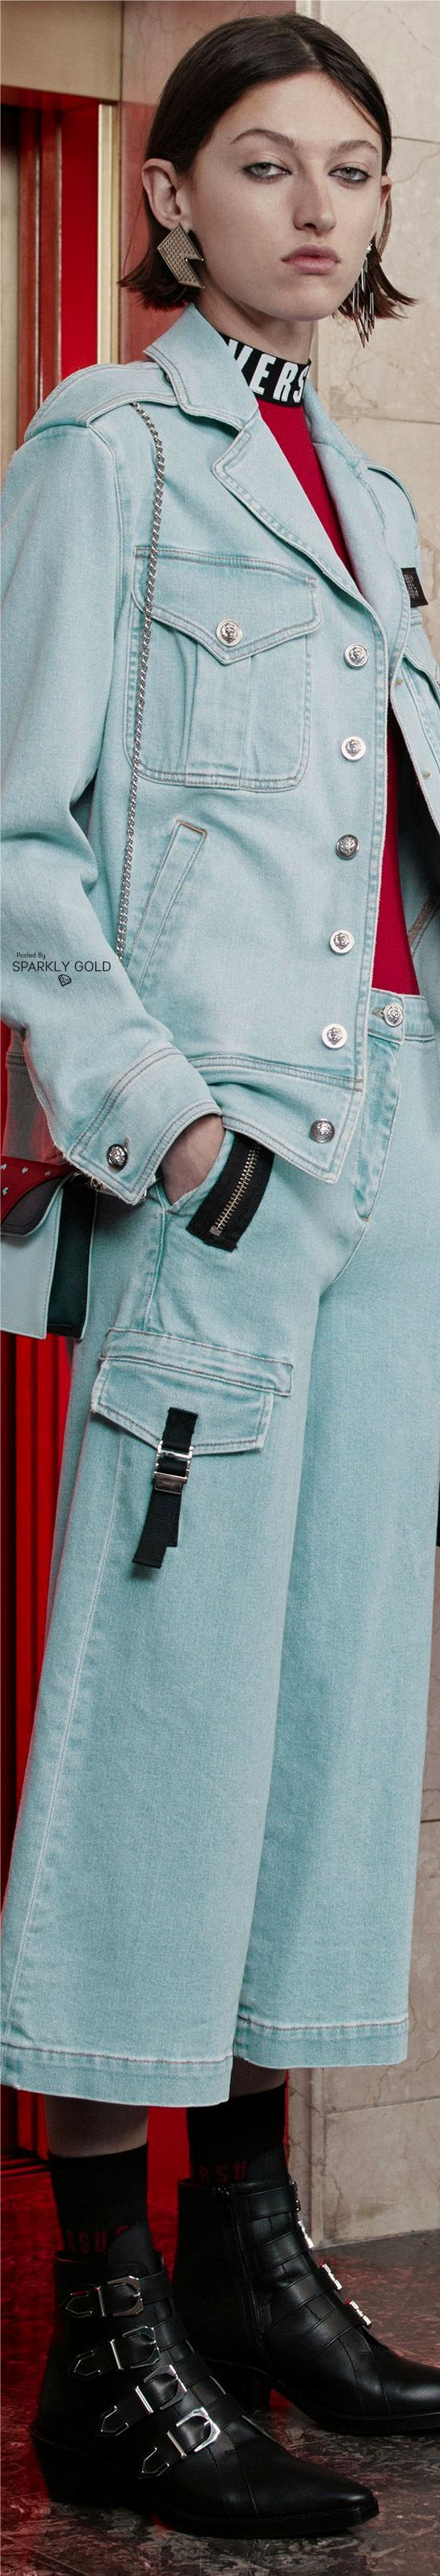 Winter mens men s fall fall autumn pre fall denim winter jeans - Versus Versace Pre Fall 2017 Denim Styleversus Versacedenim Fashioncapri Pantsautumn Fashioncouture Collectionfashion 2017winter